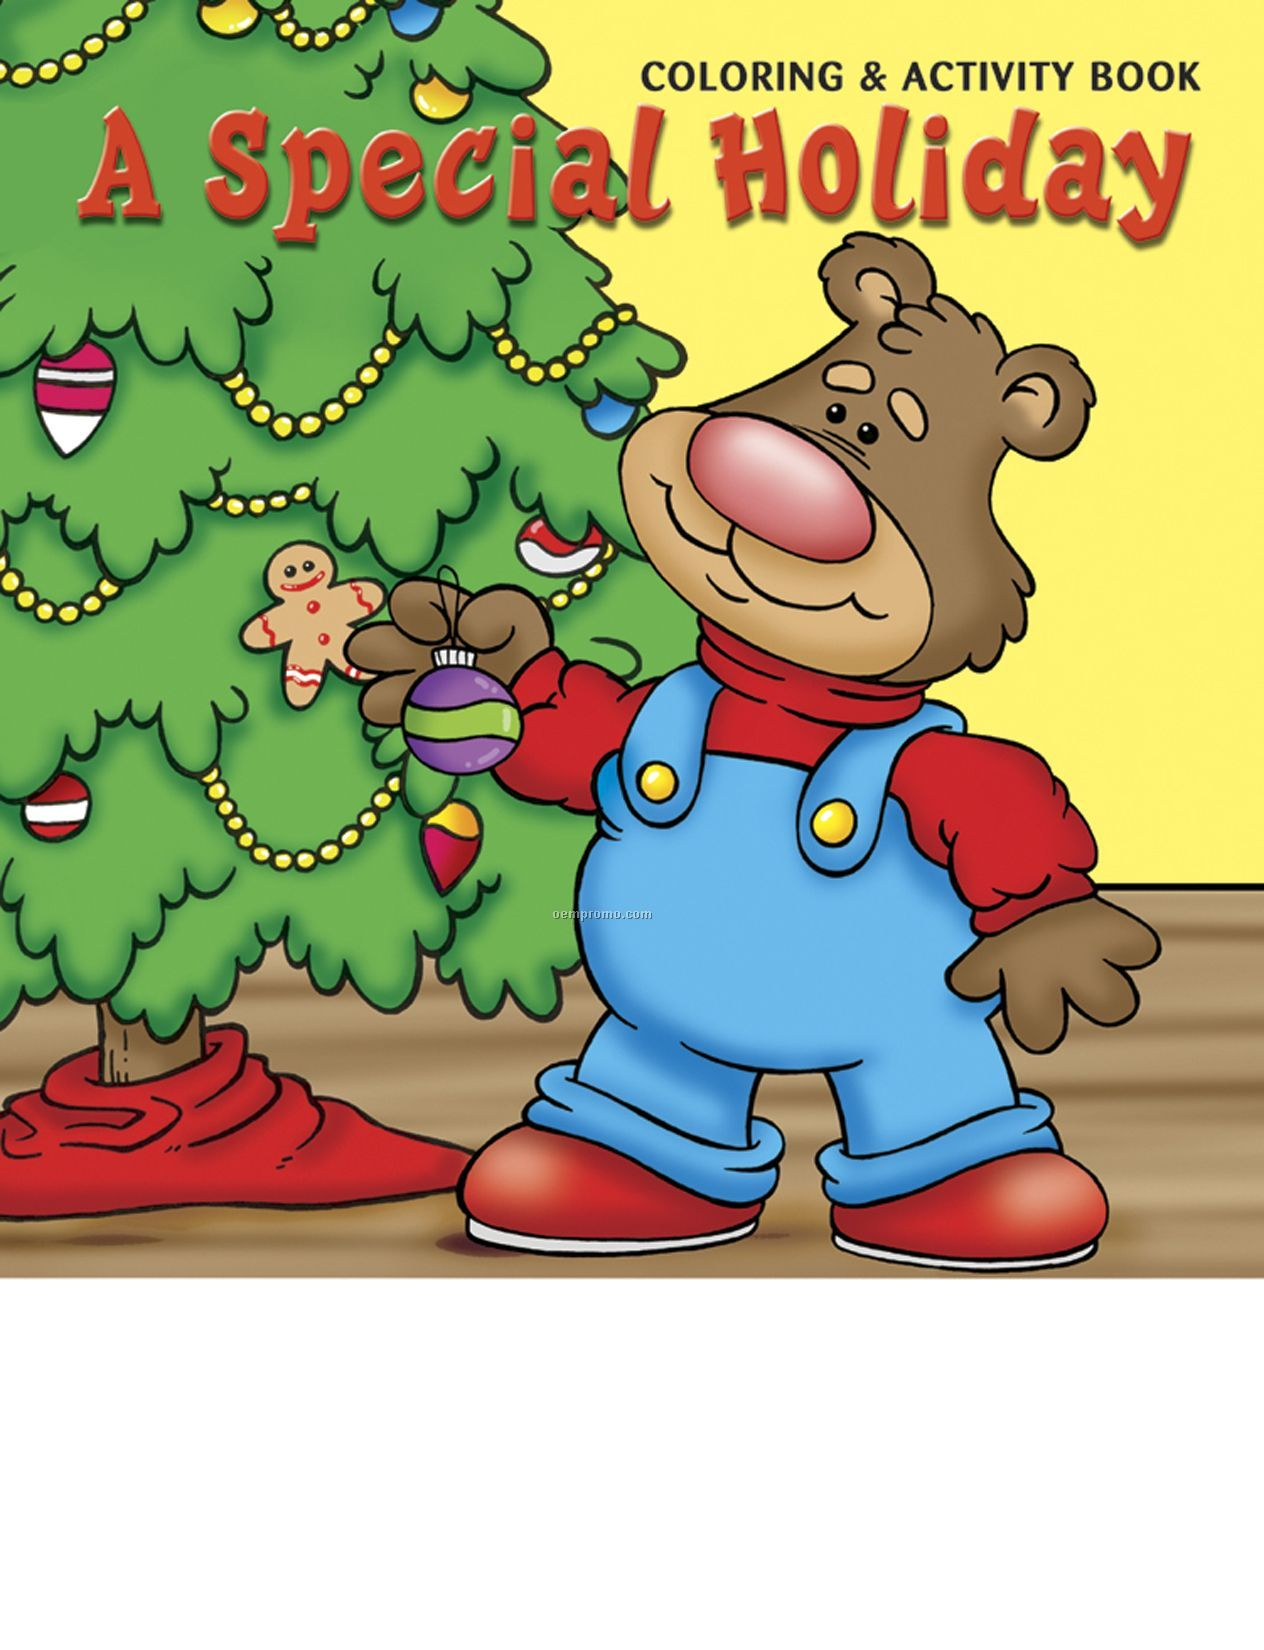 A Special Holiday Coloring Book Fun Pack